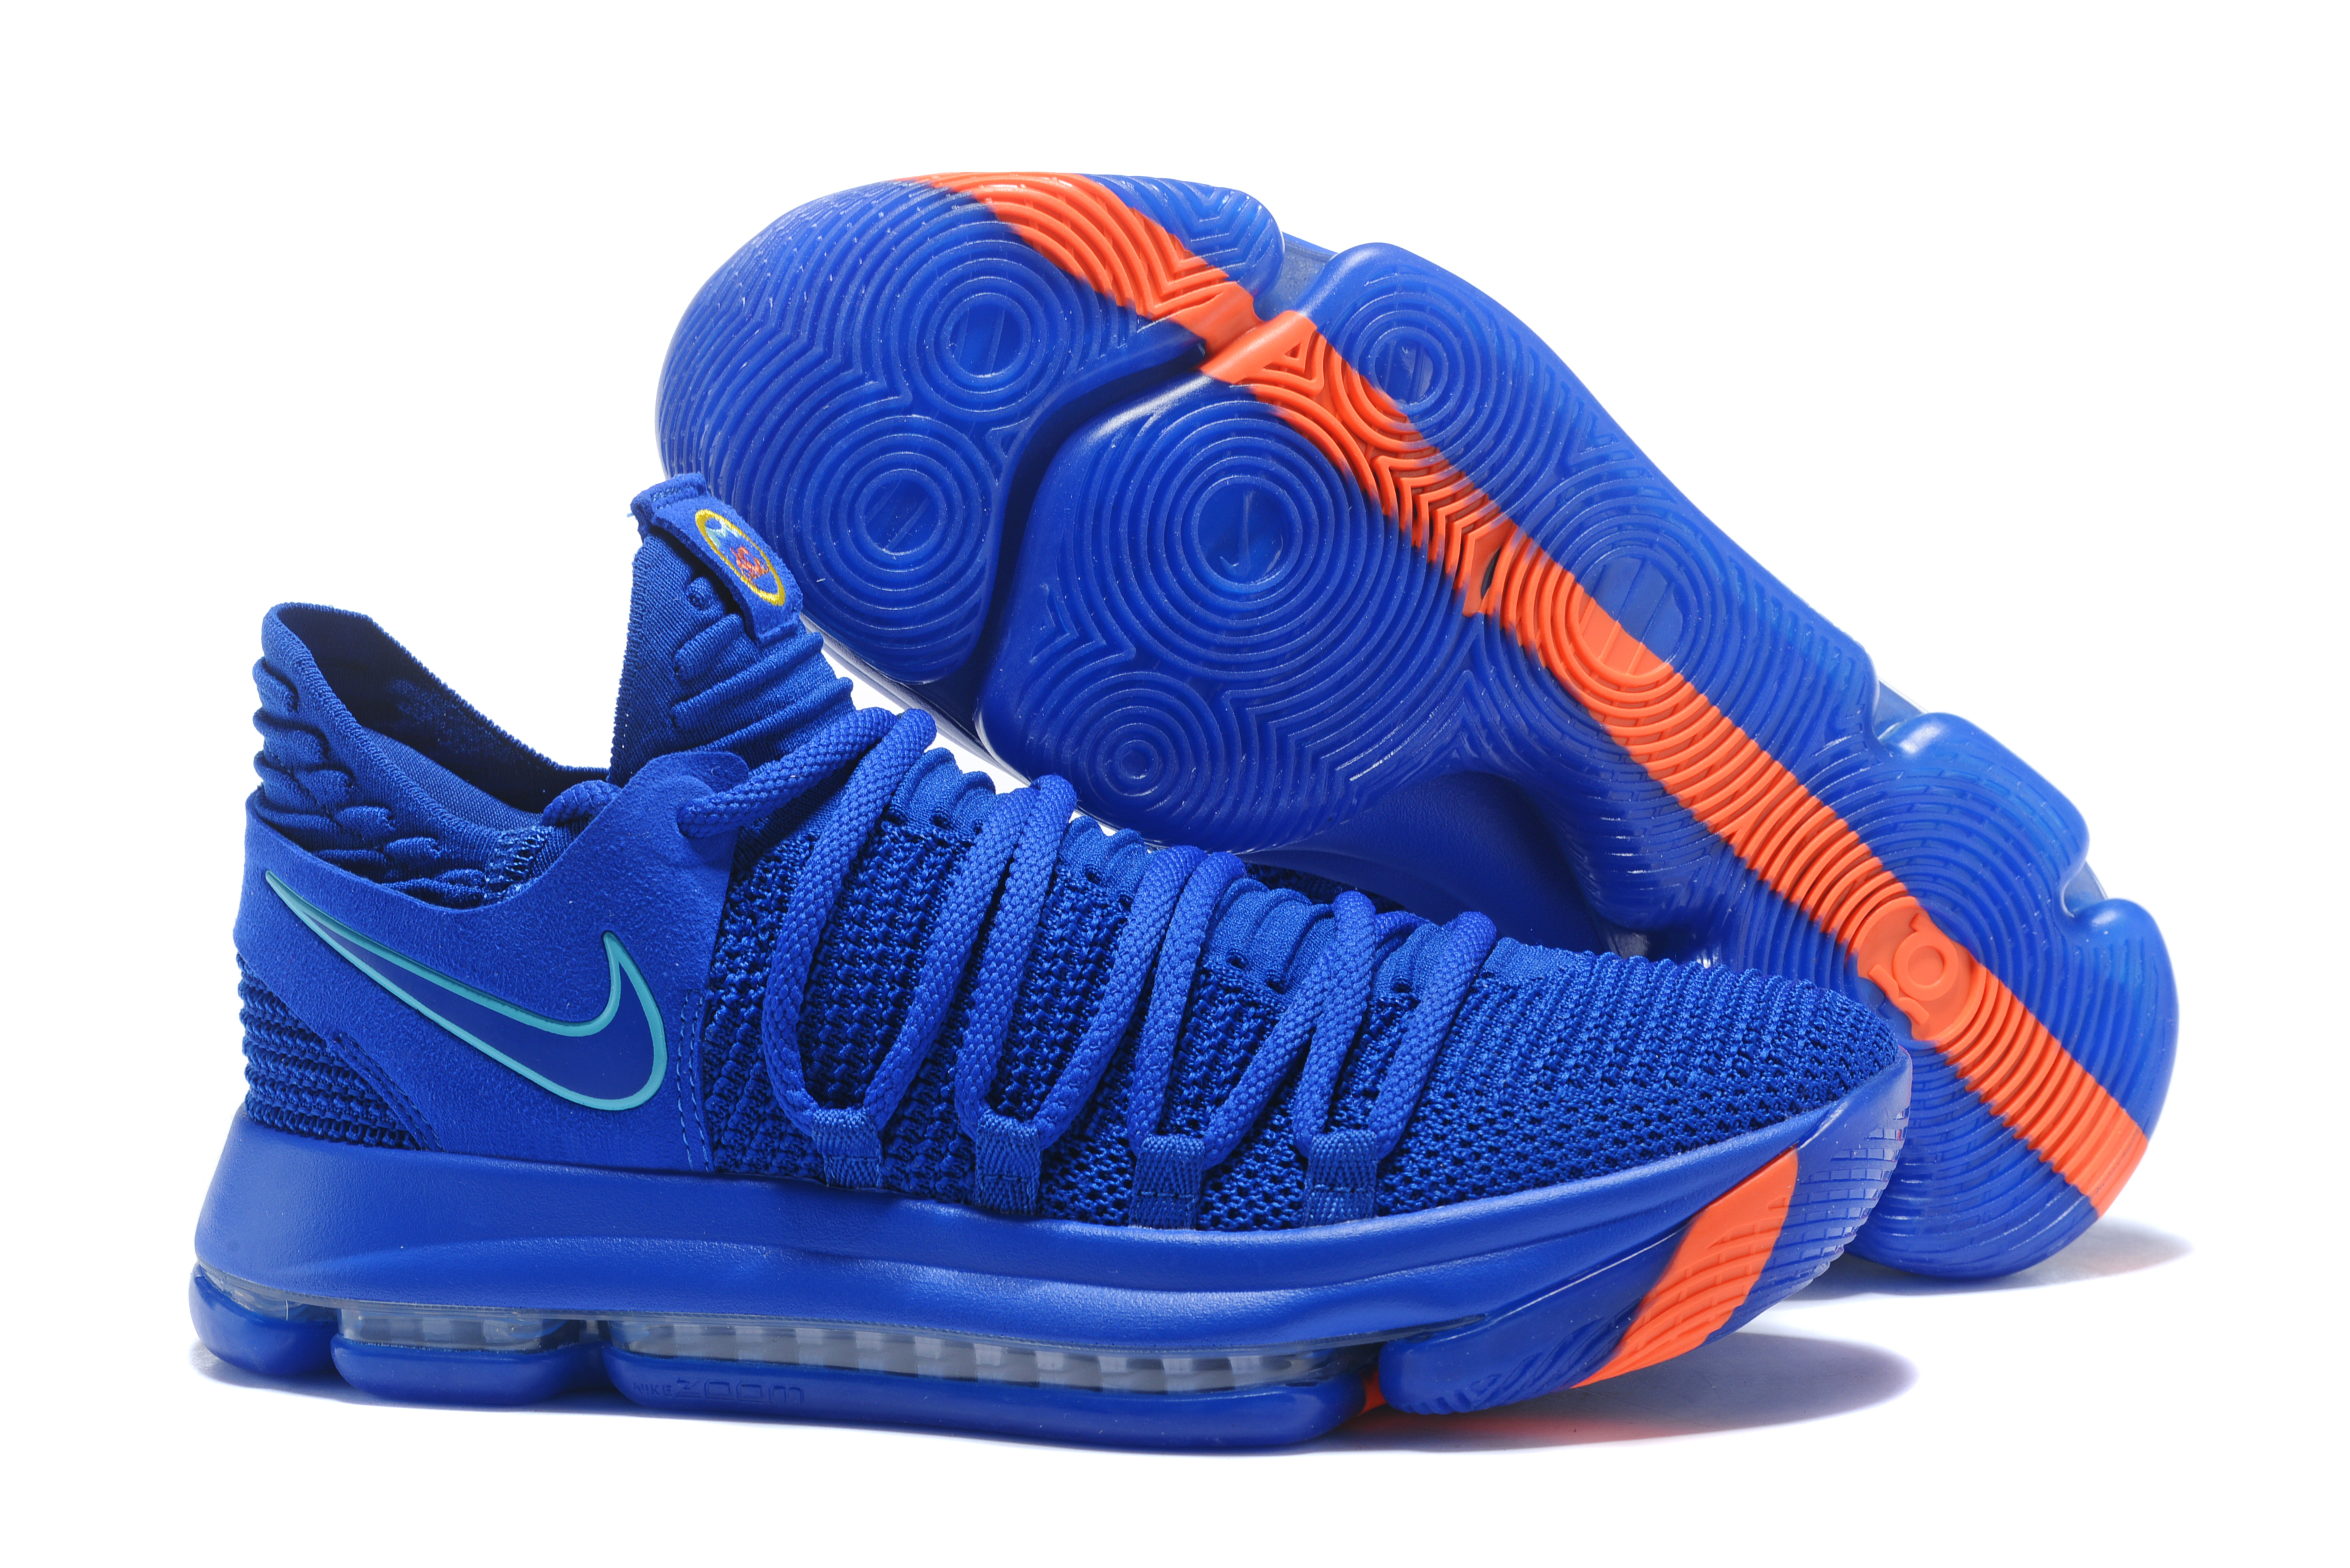 New Nike KD 10 Chinese Colors Shoes